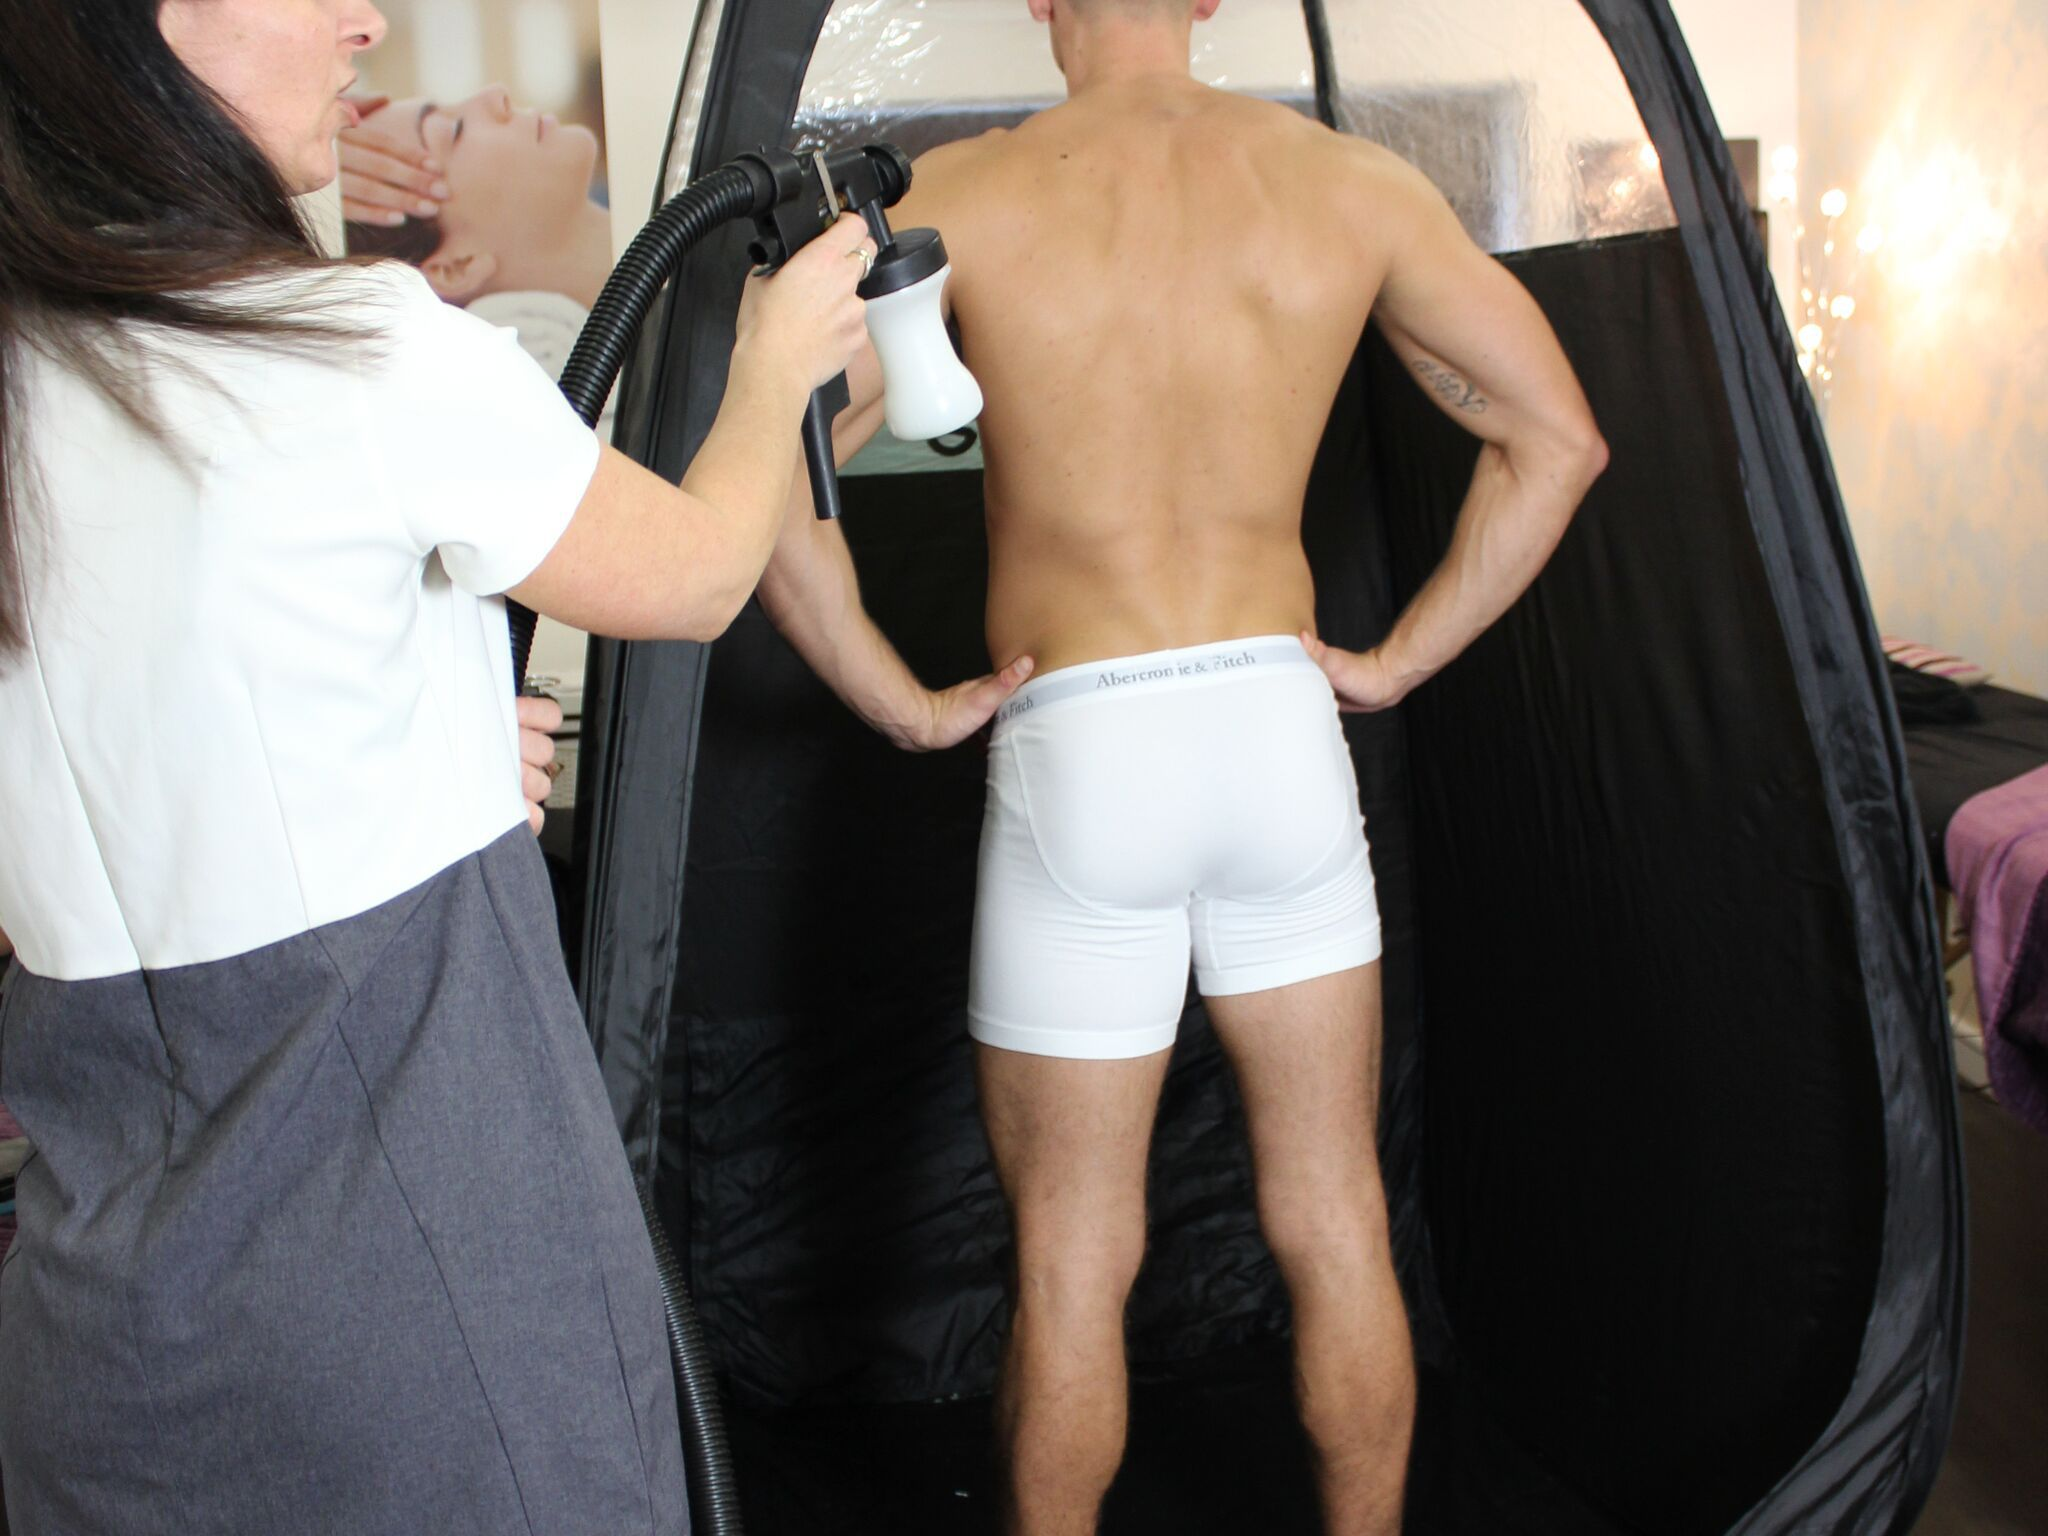 Photograph of a man receiving a spray tan